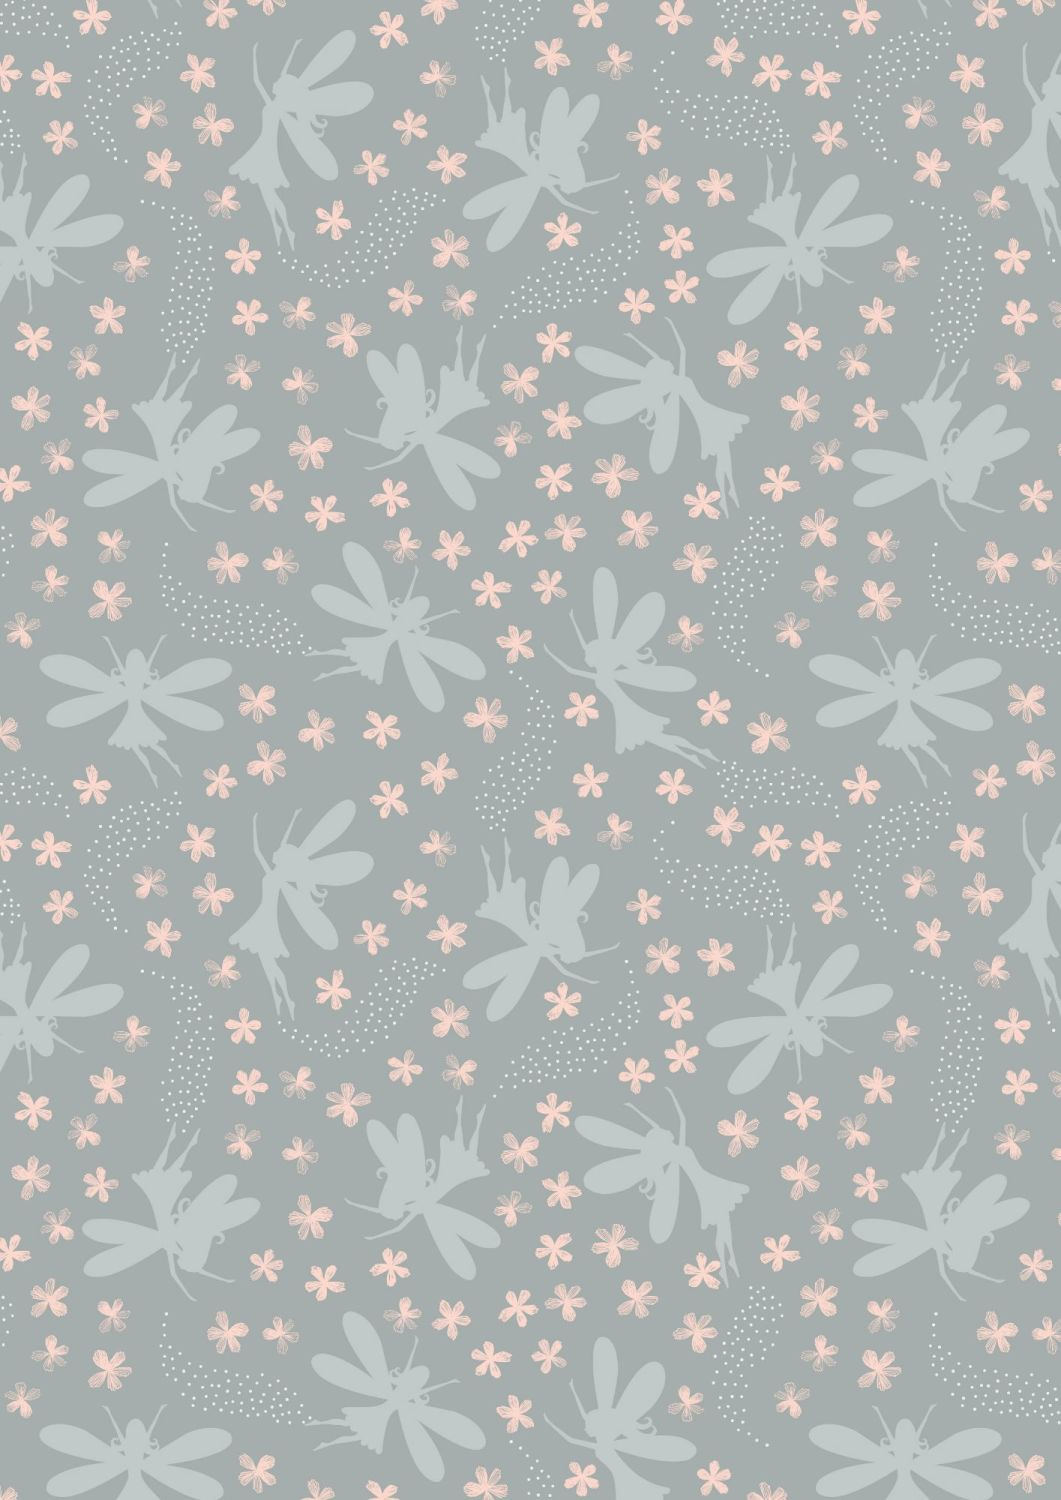 Lewis and Irene -  Fairy Clocks - Light Grey Floral Fairies with Silver Met